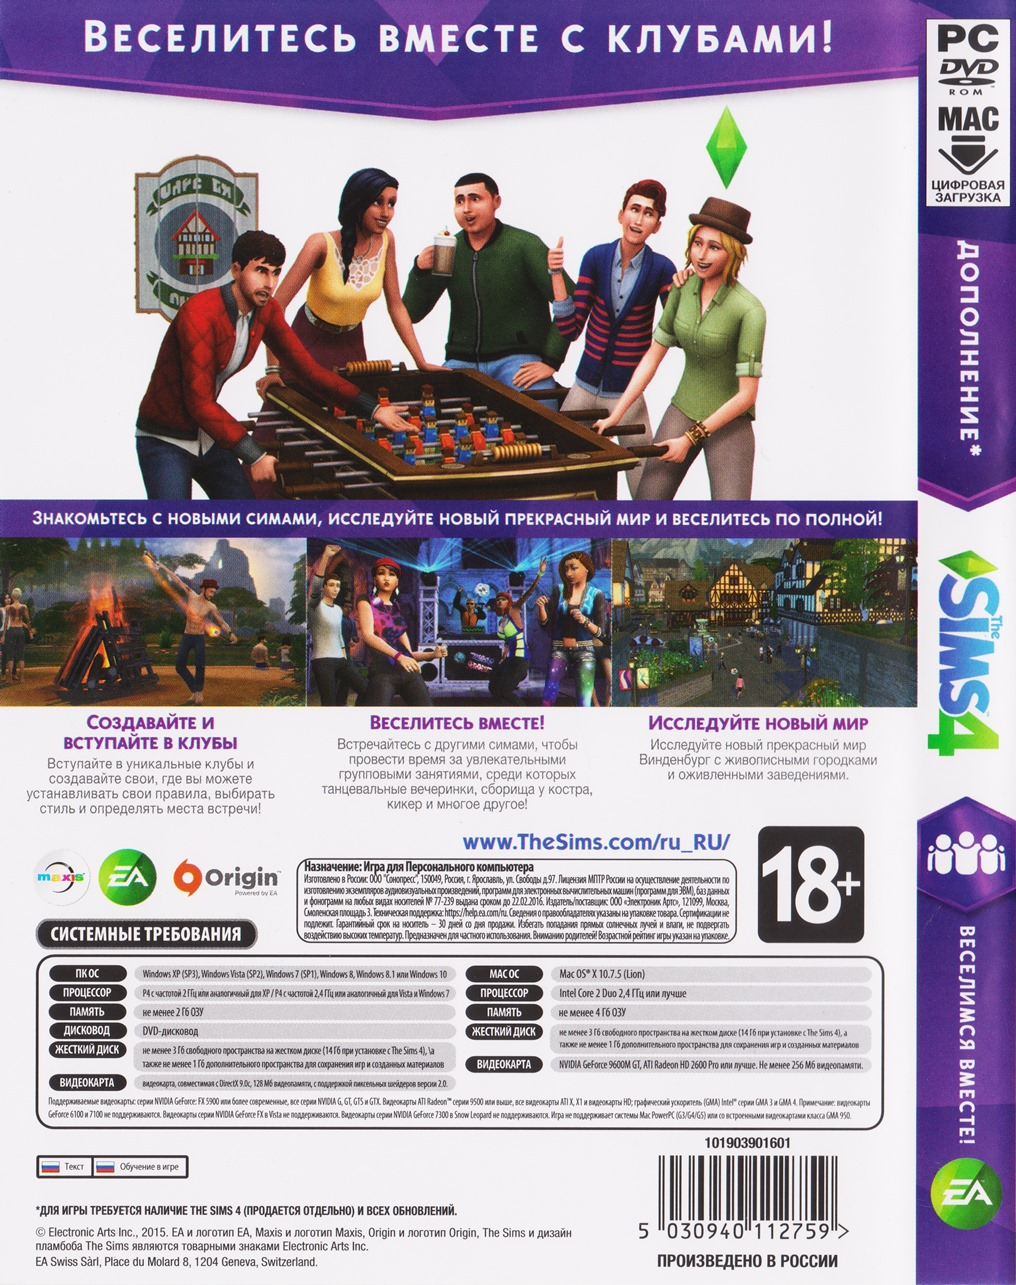 The Sims 4: Get Together - DLC -  (Photo CD-Key)